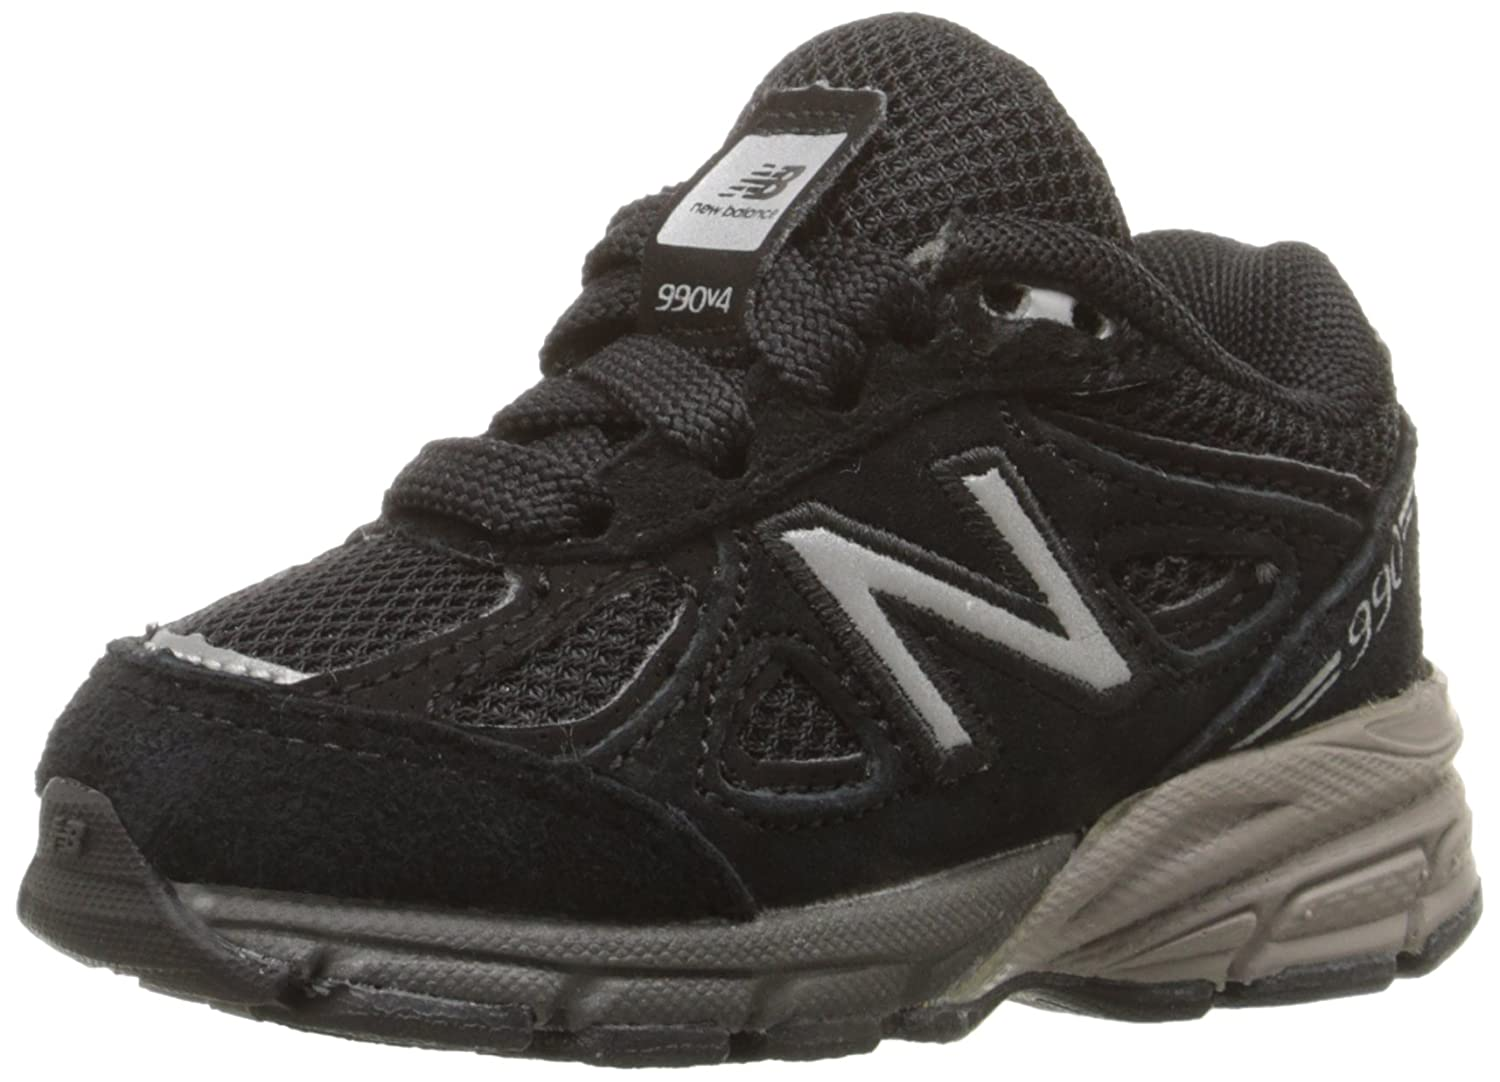 da89722a23b30 Amazon.com | New Balance Kids' KJ990V4 Infant Running Shoe | Sneakers